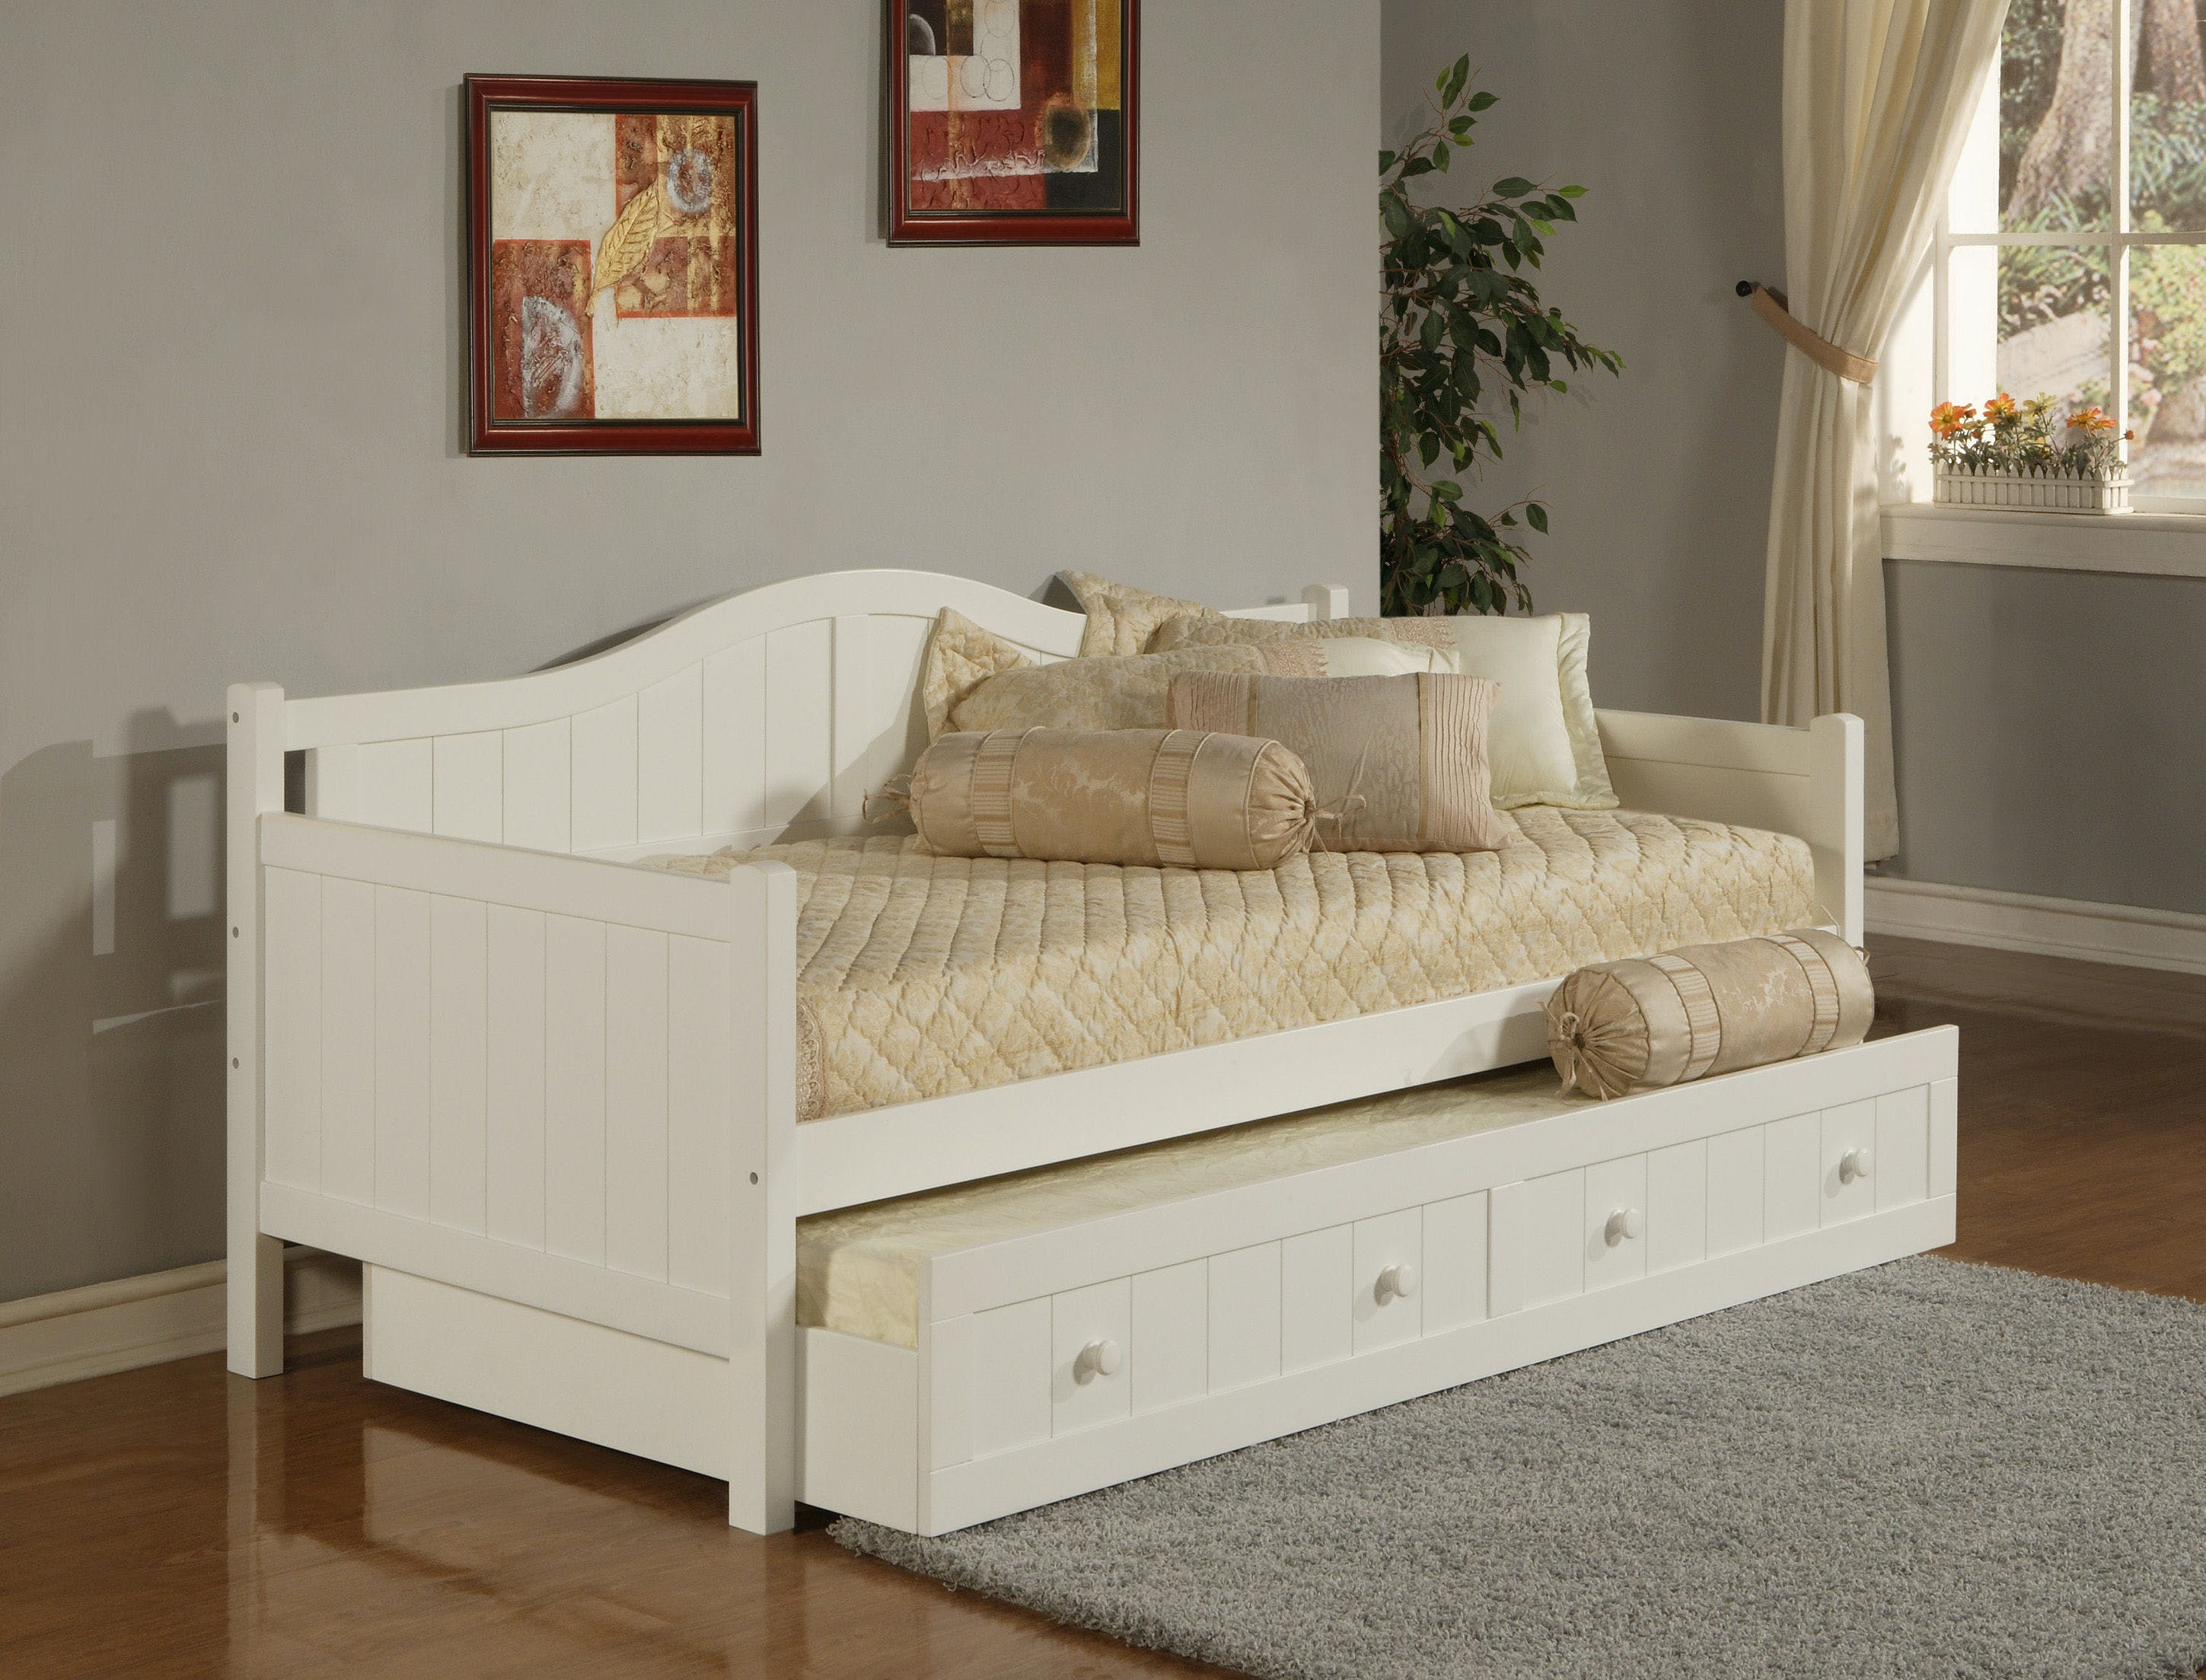 Hillsdale Furniture Bedroom Staci Daybed With Trundle